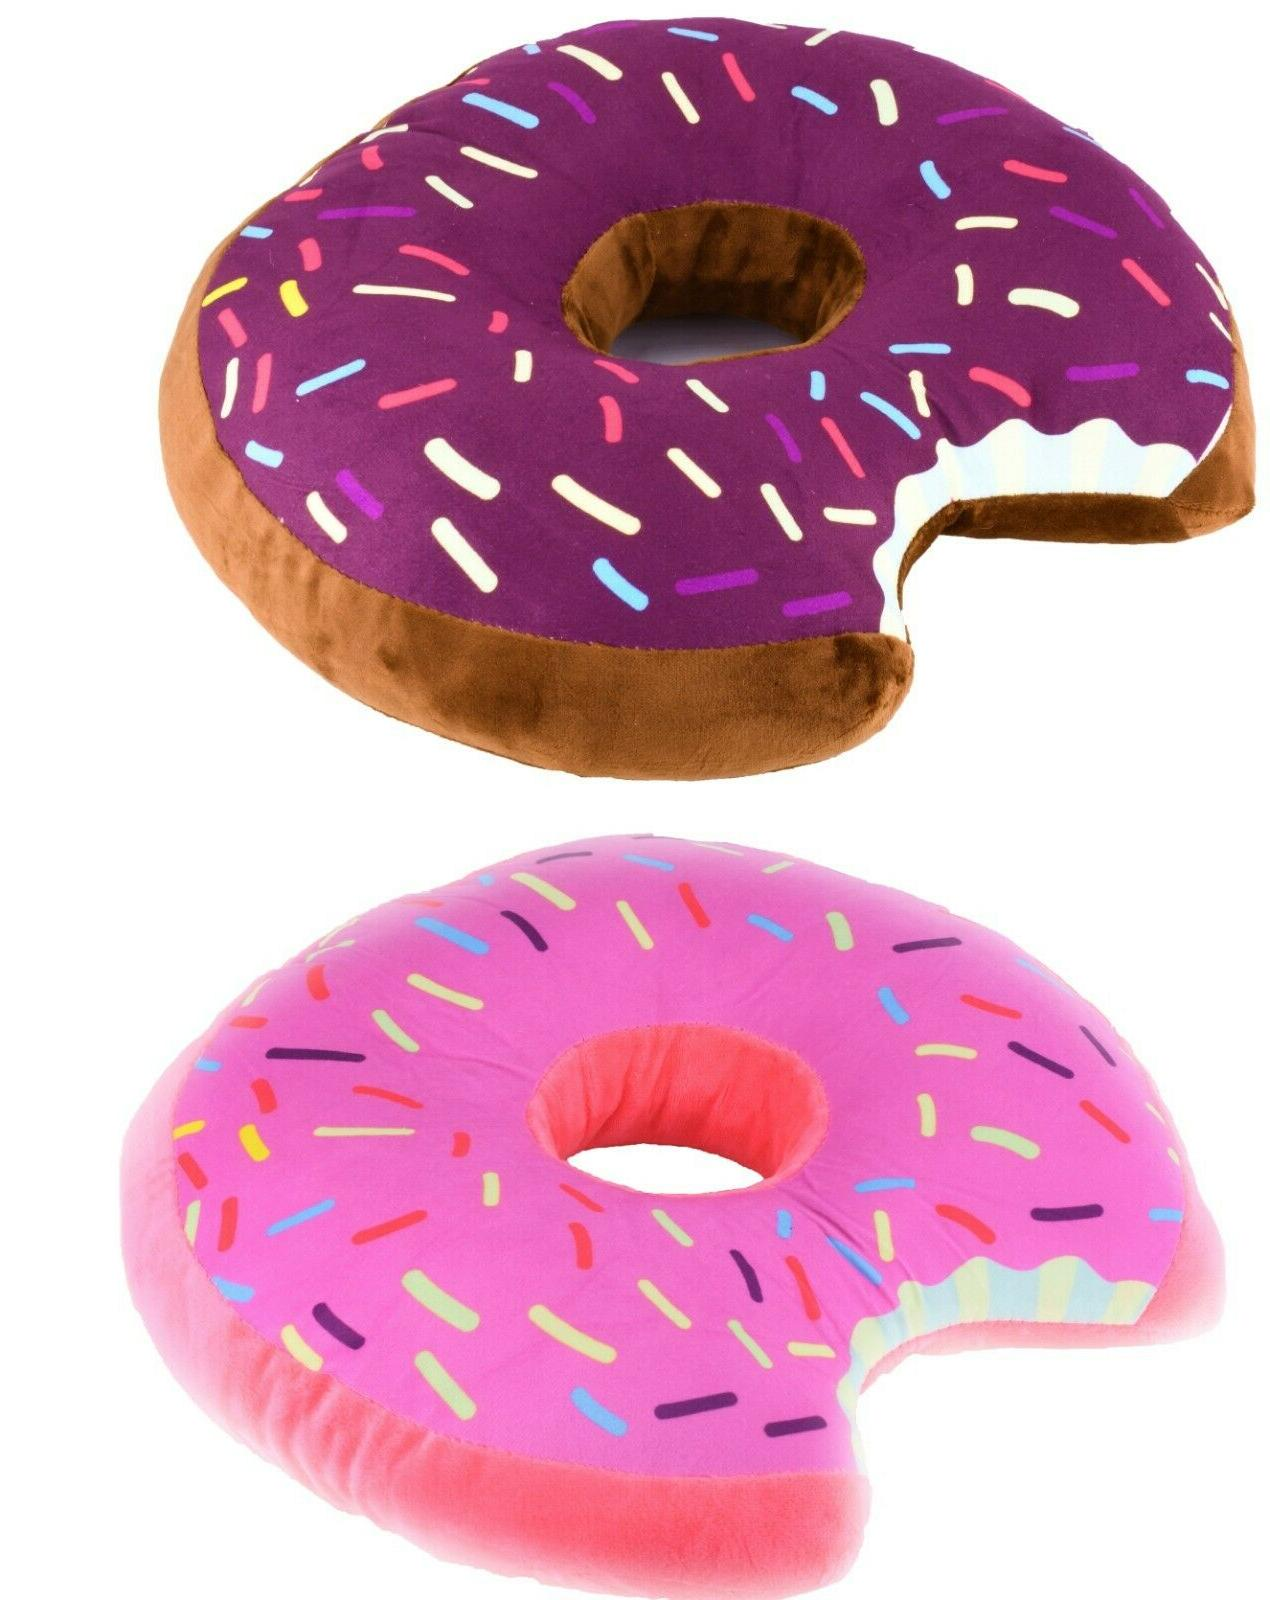 donut shaped plush pillow sprinkled comfy seat